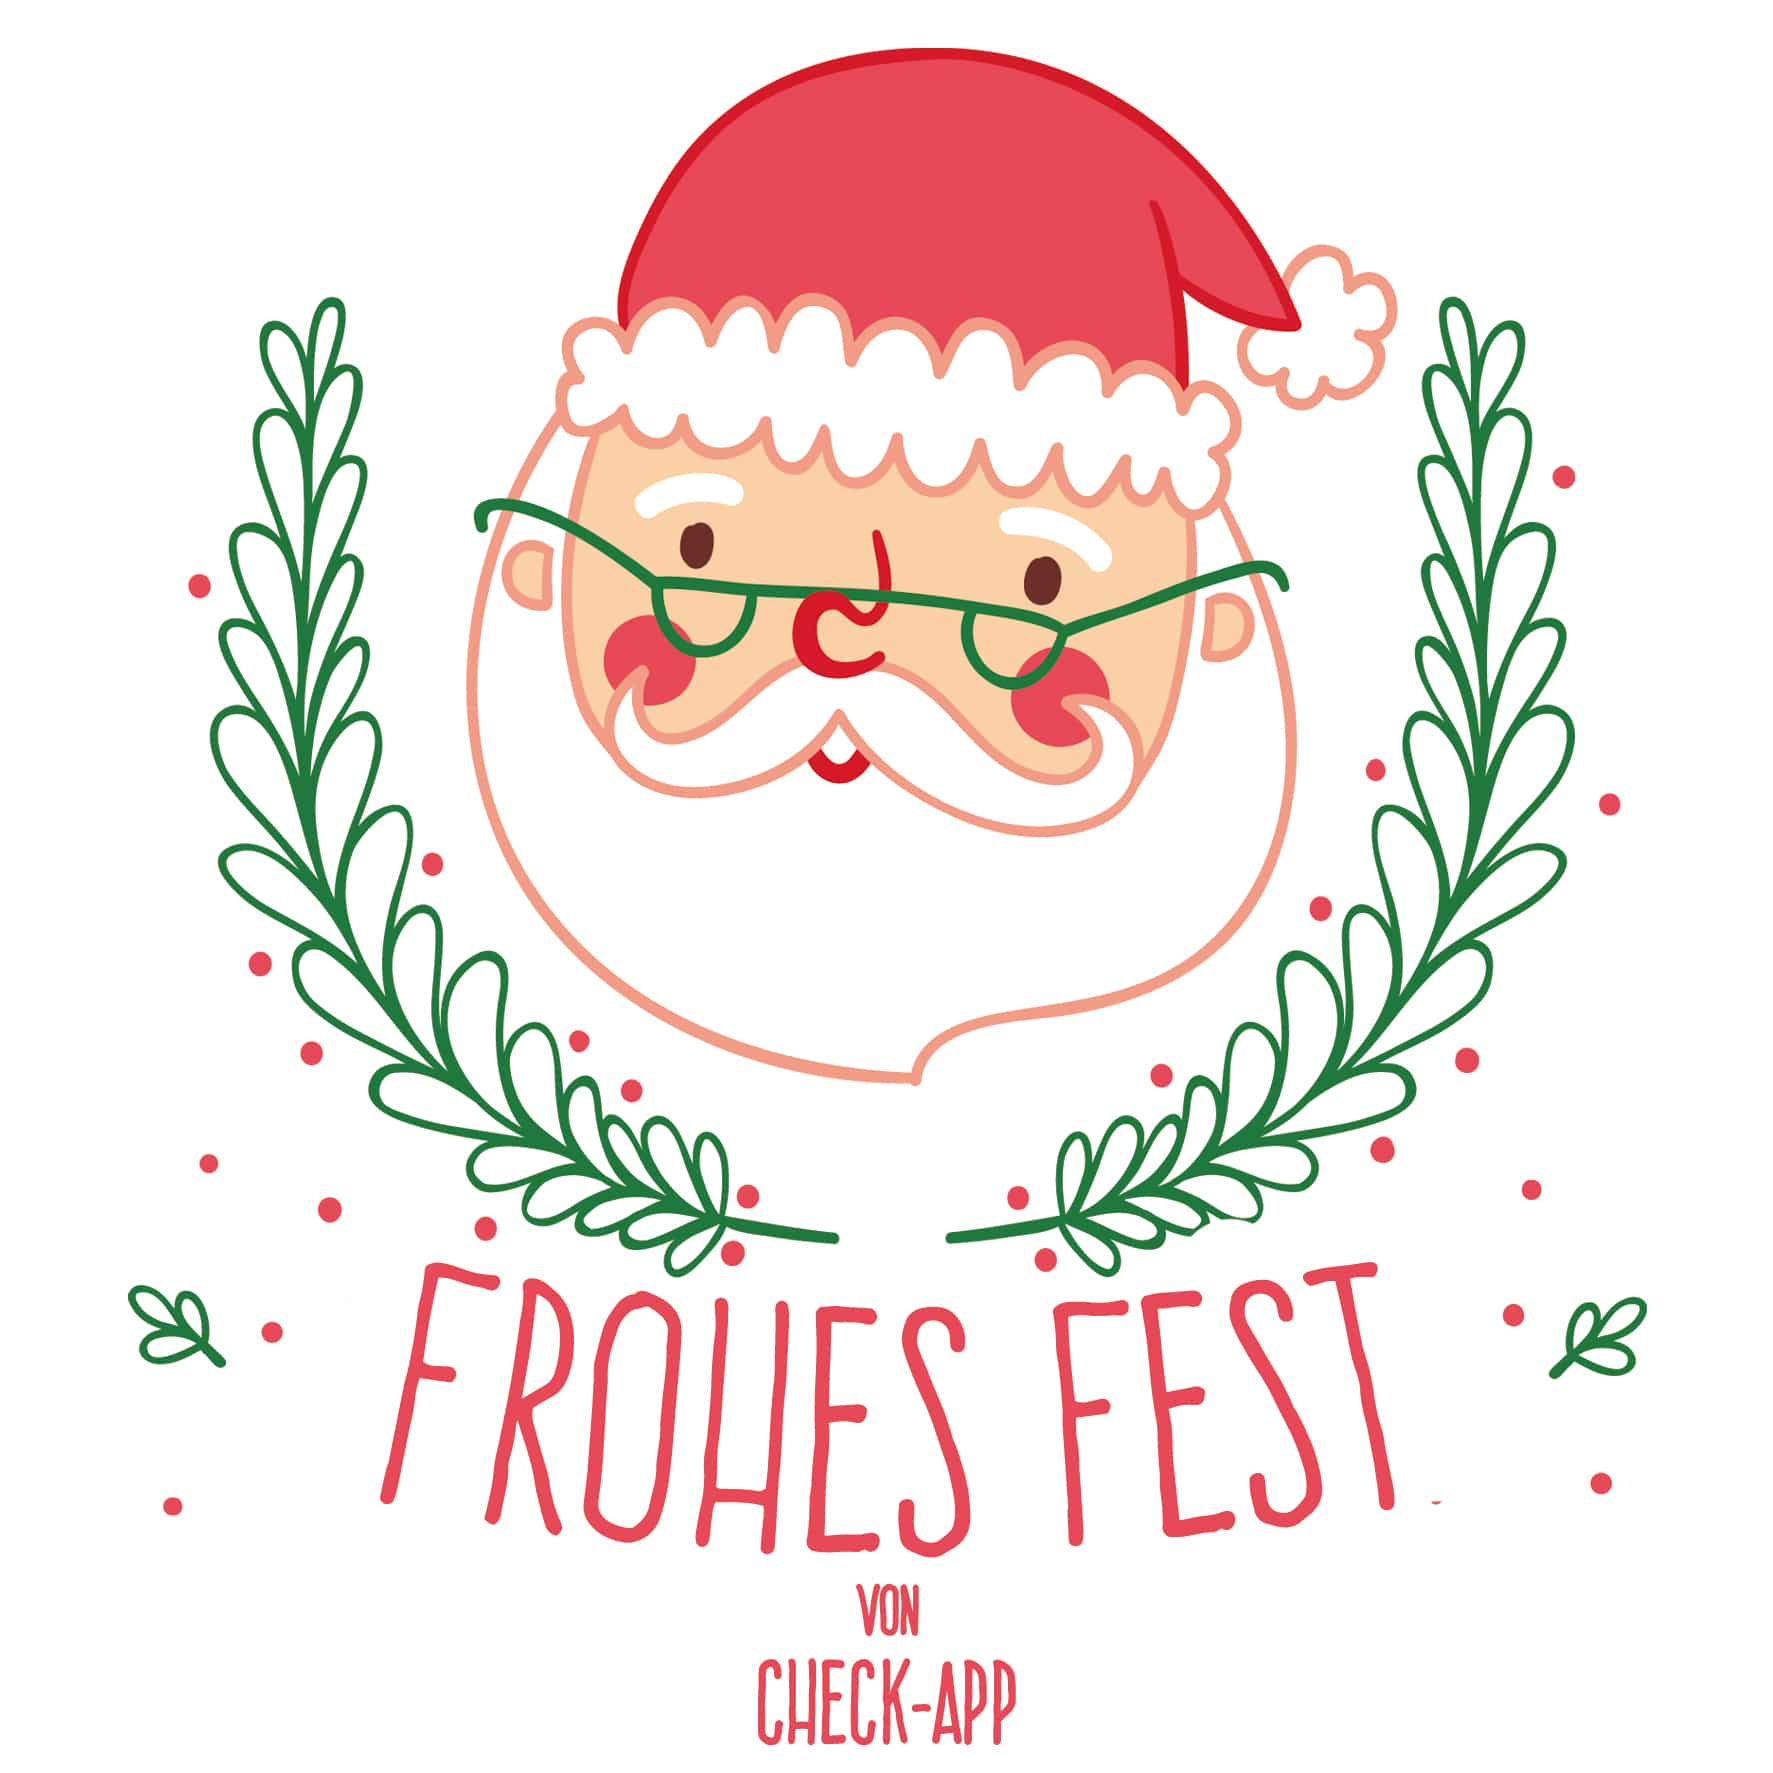 Frohes_Fest_Check_App